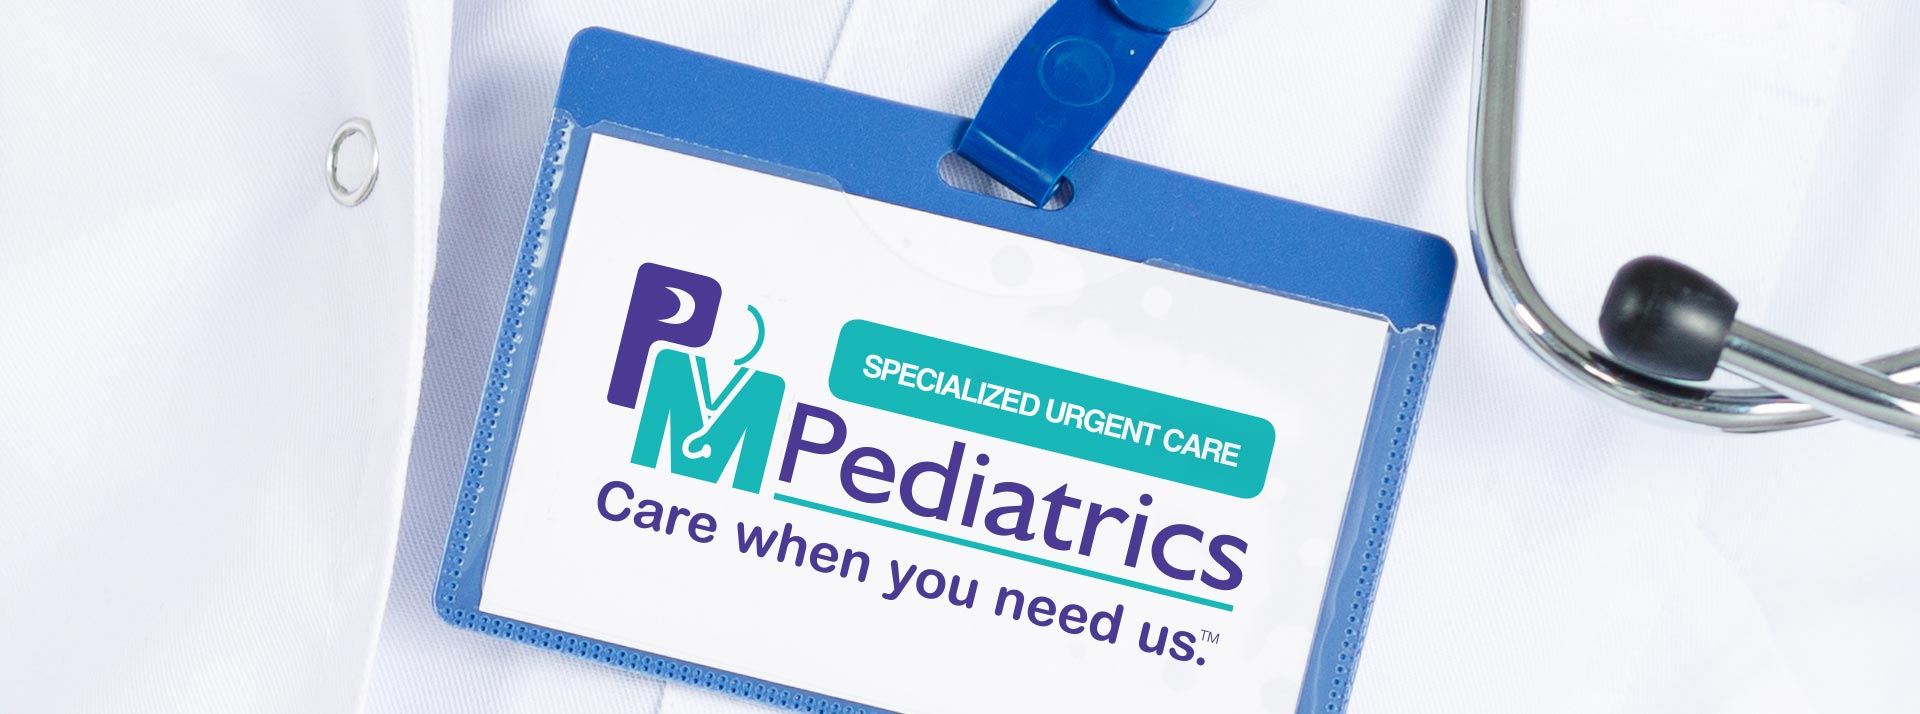 PM Pediatrics logo in medical badge